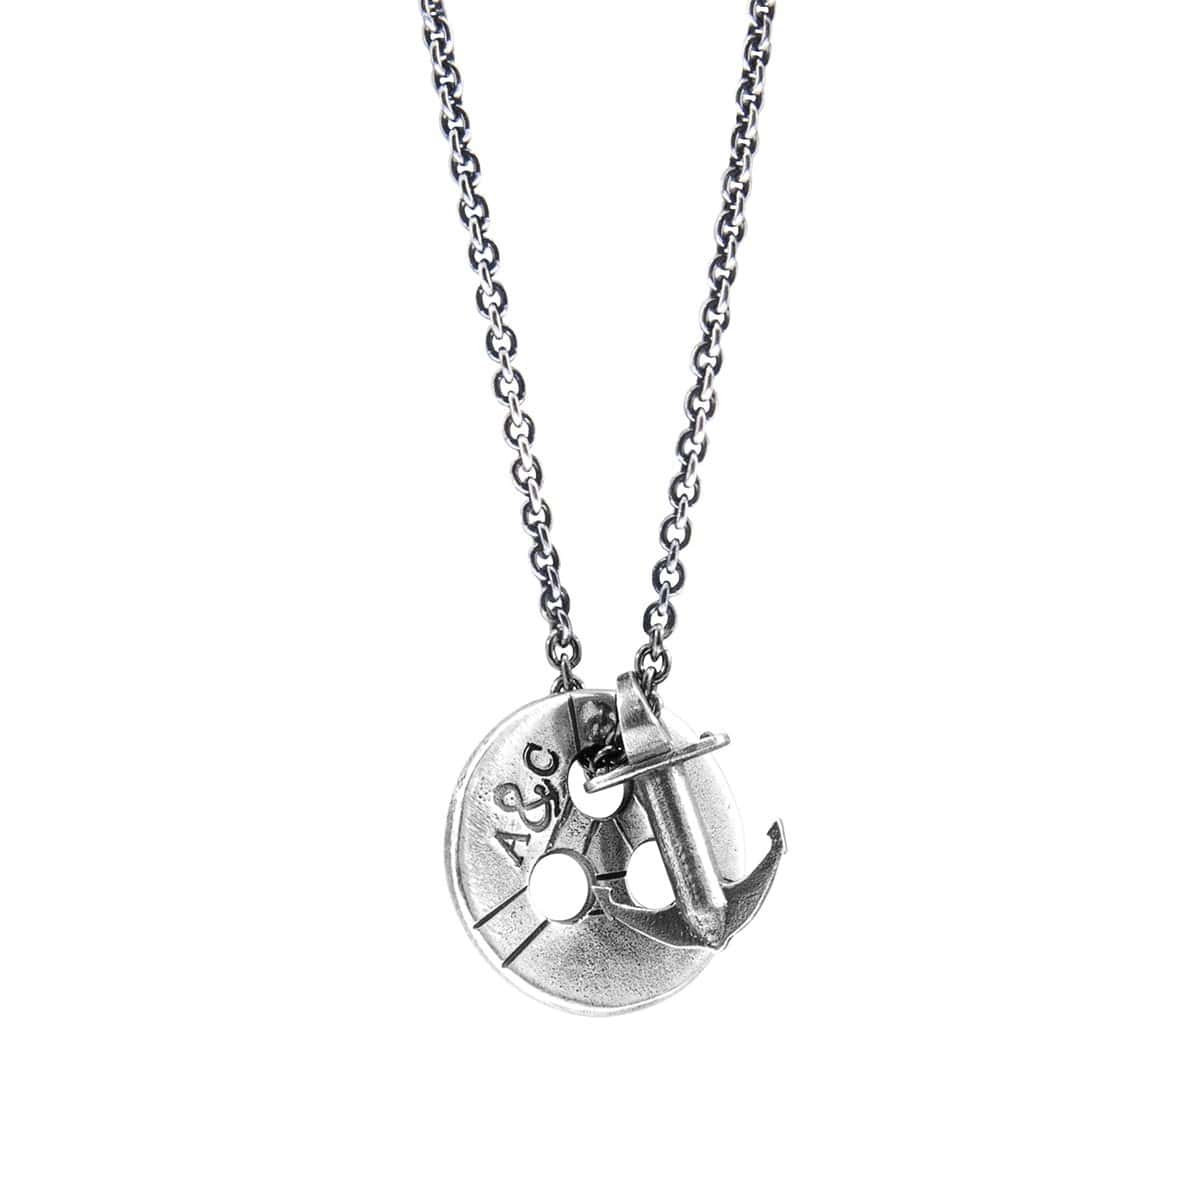 Lerwick Pulley Silver Necklace Pendant